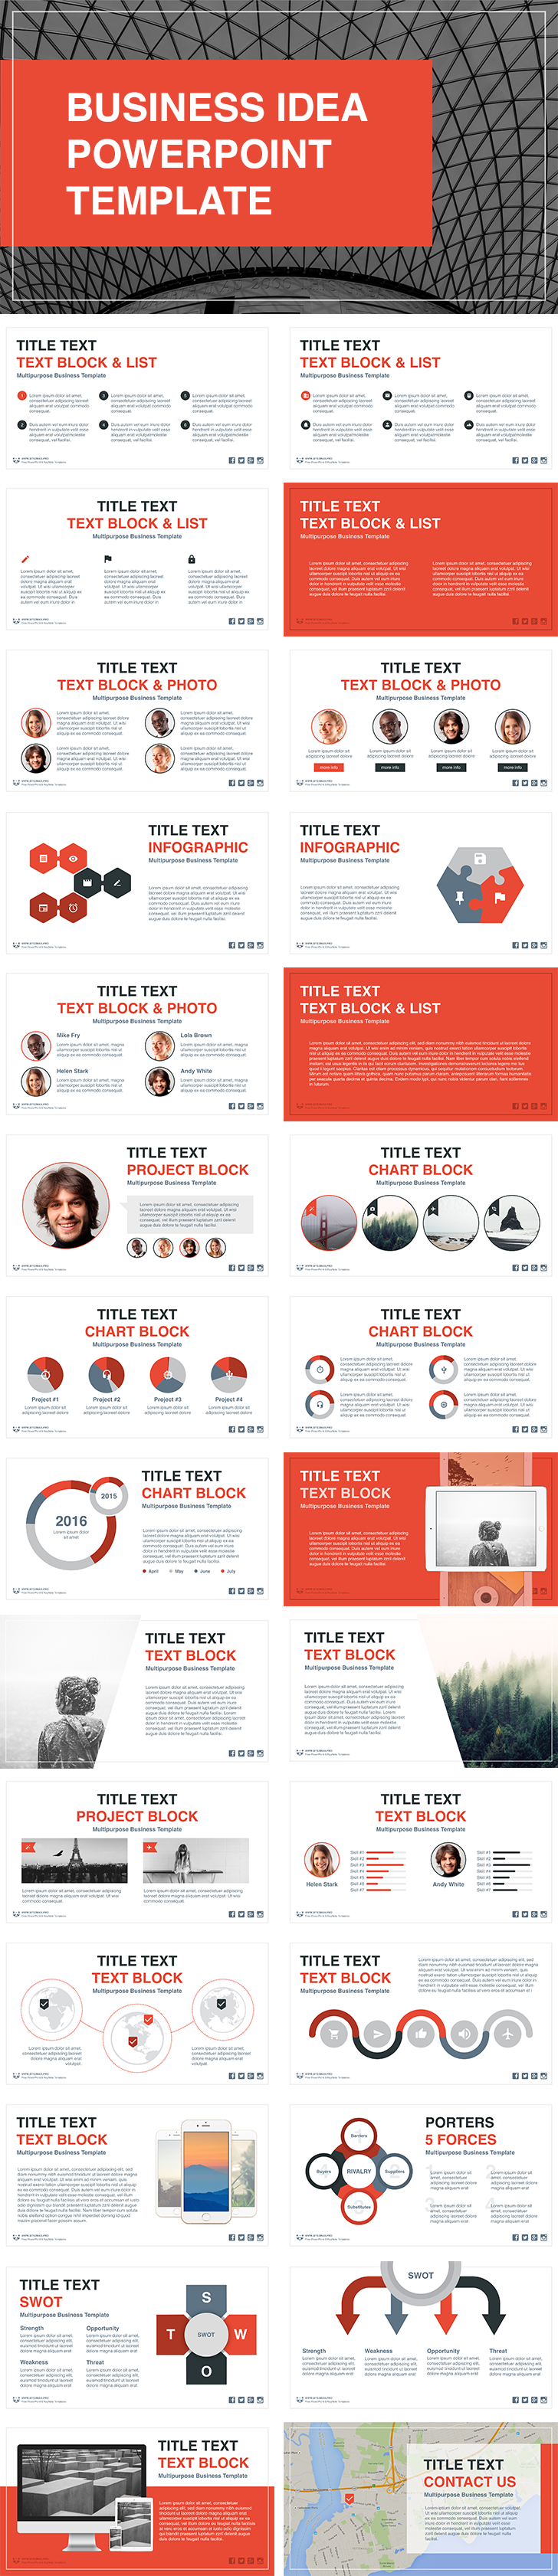 Business idea free powerpoint template download free use business idea free powerpoint template to quickly create a visual report plan report or presentation powerpoint presentation template is fully cheaphphosting Images